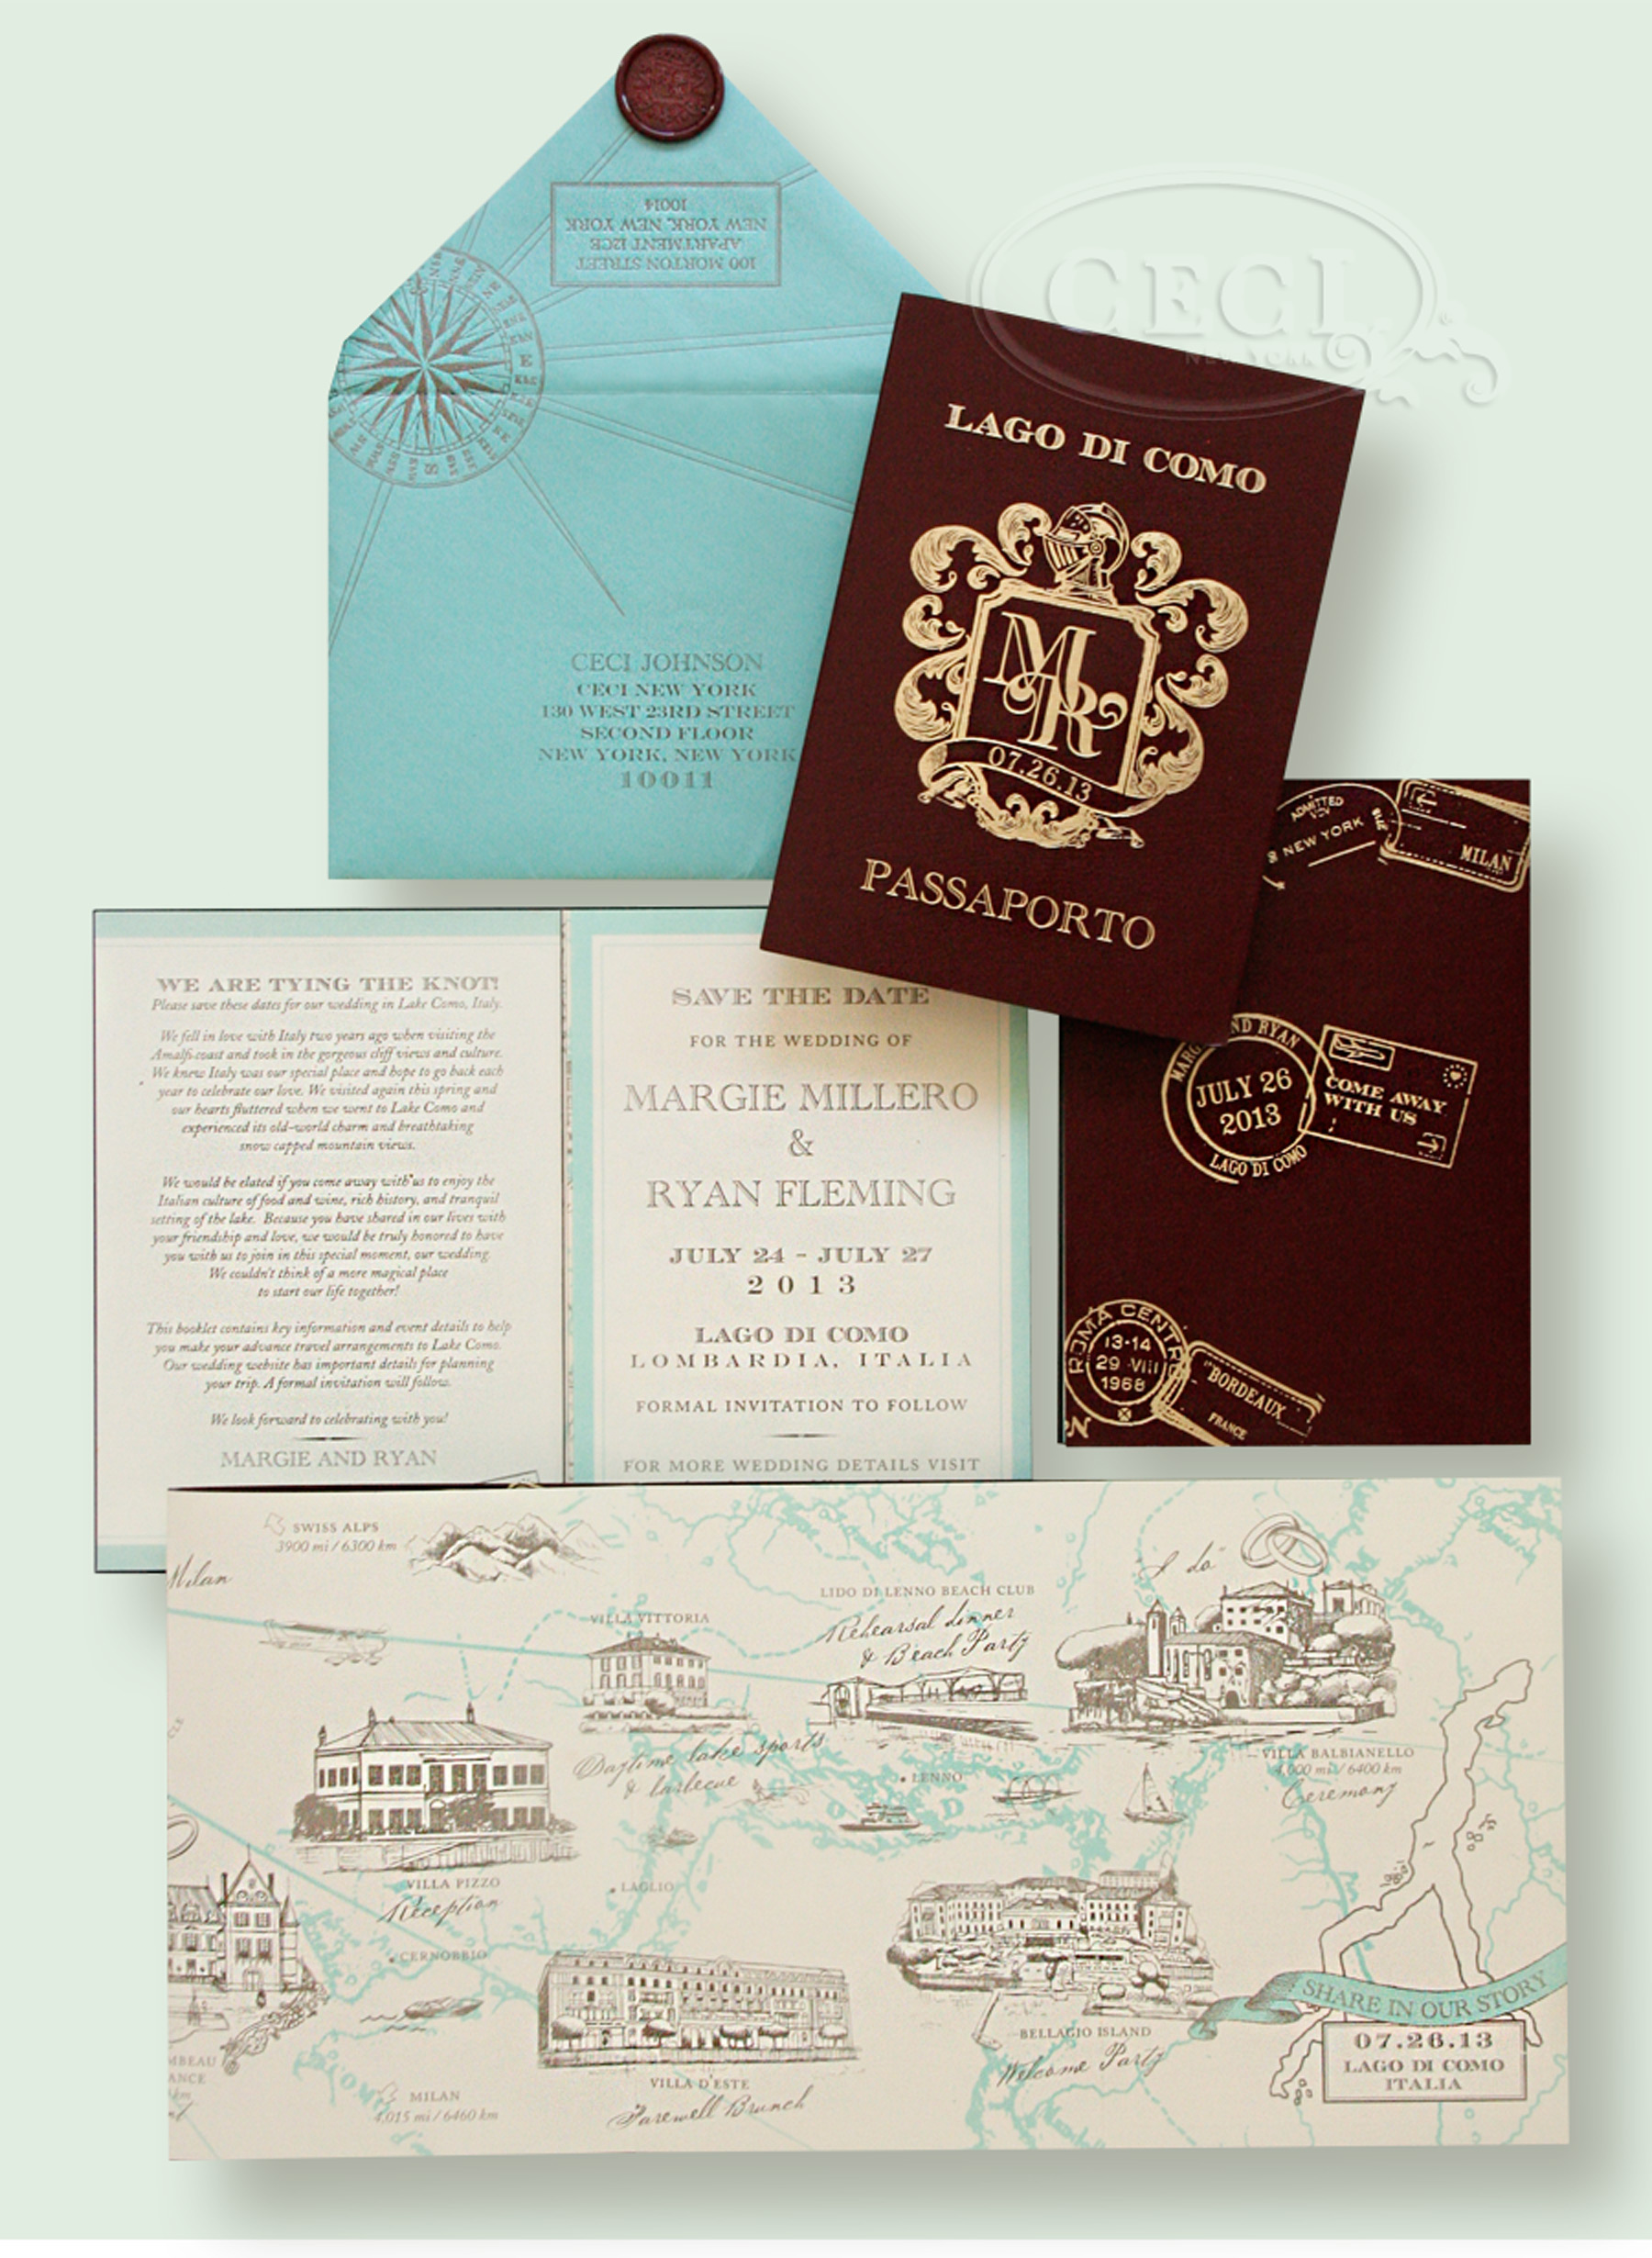 Luxury Wedding Invitations by Ceci New York - Our Muse - Luxurious Lake Como, Italy Wedding - Be inspired by Margie & Ryan's luxurious Lake Como wedding in scenic northern Italy - lake como, wedding, ceci new york, invitations, save-the-dates, luxury invitations, passport, teal, ivory, wax seal, letterpress printing, custom envelope, map, maroon